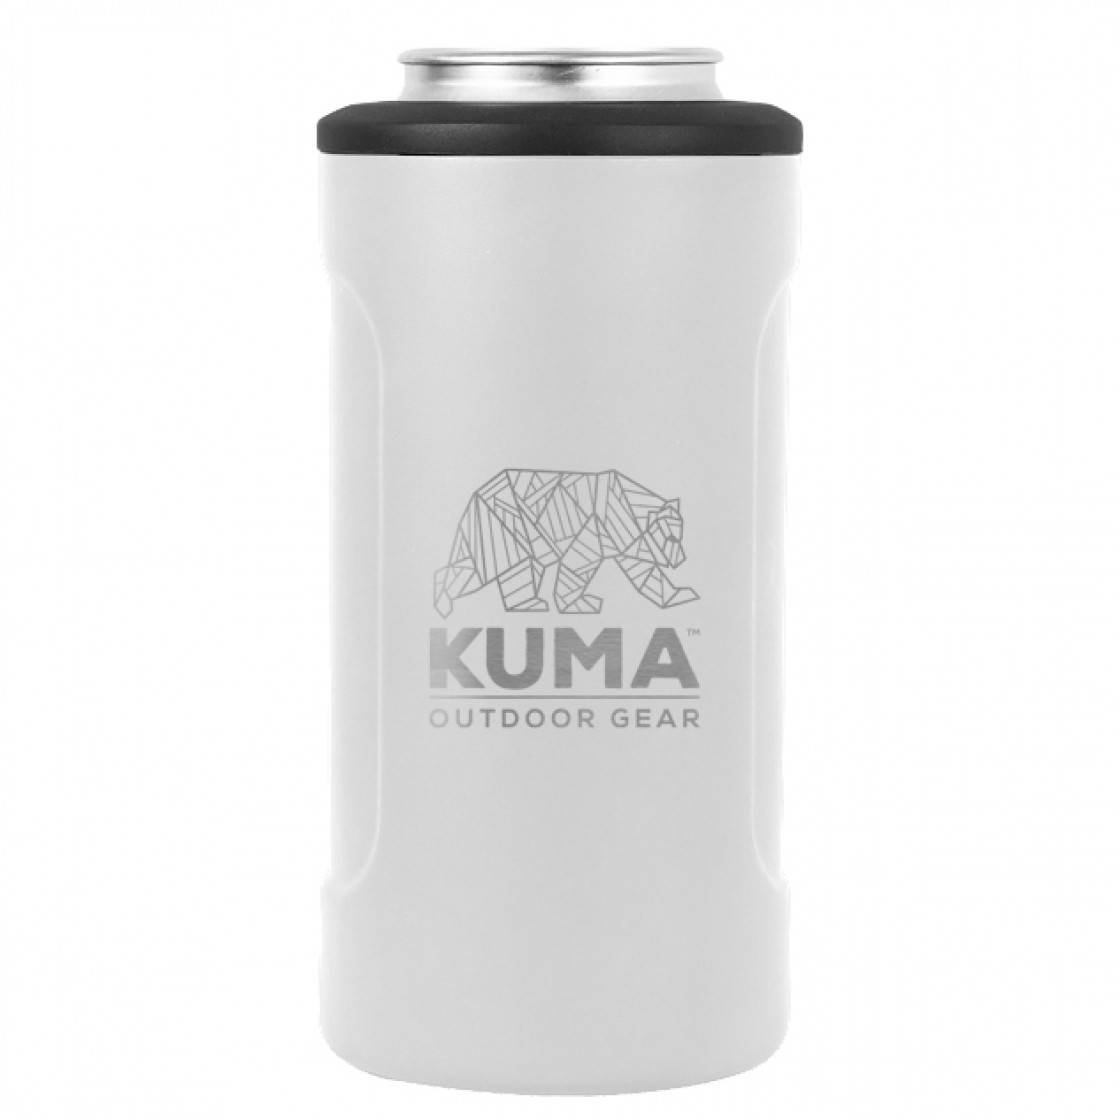 3 in 1 Coozie - White